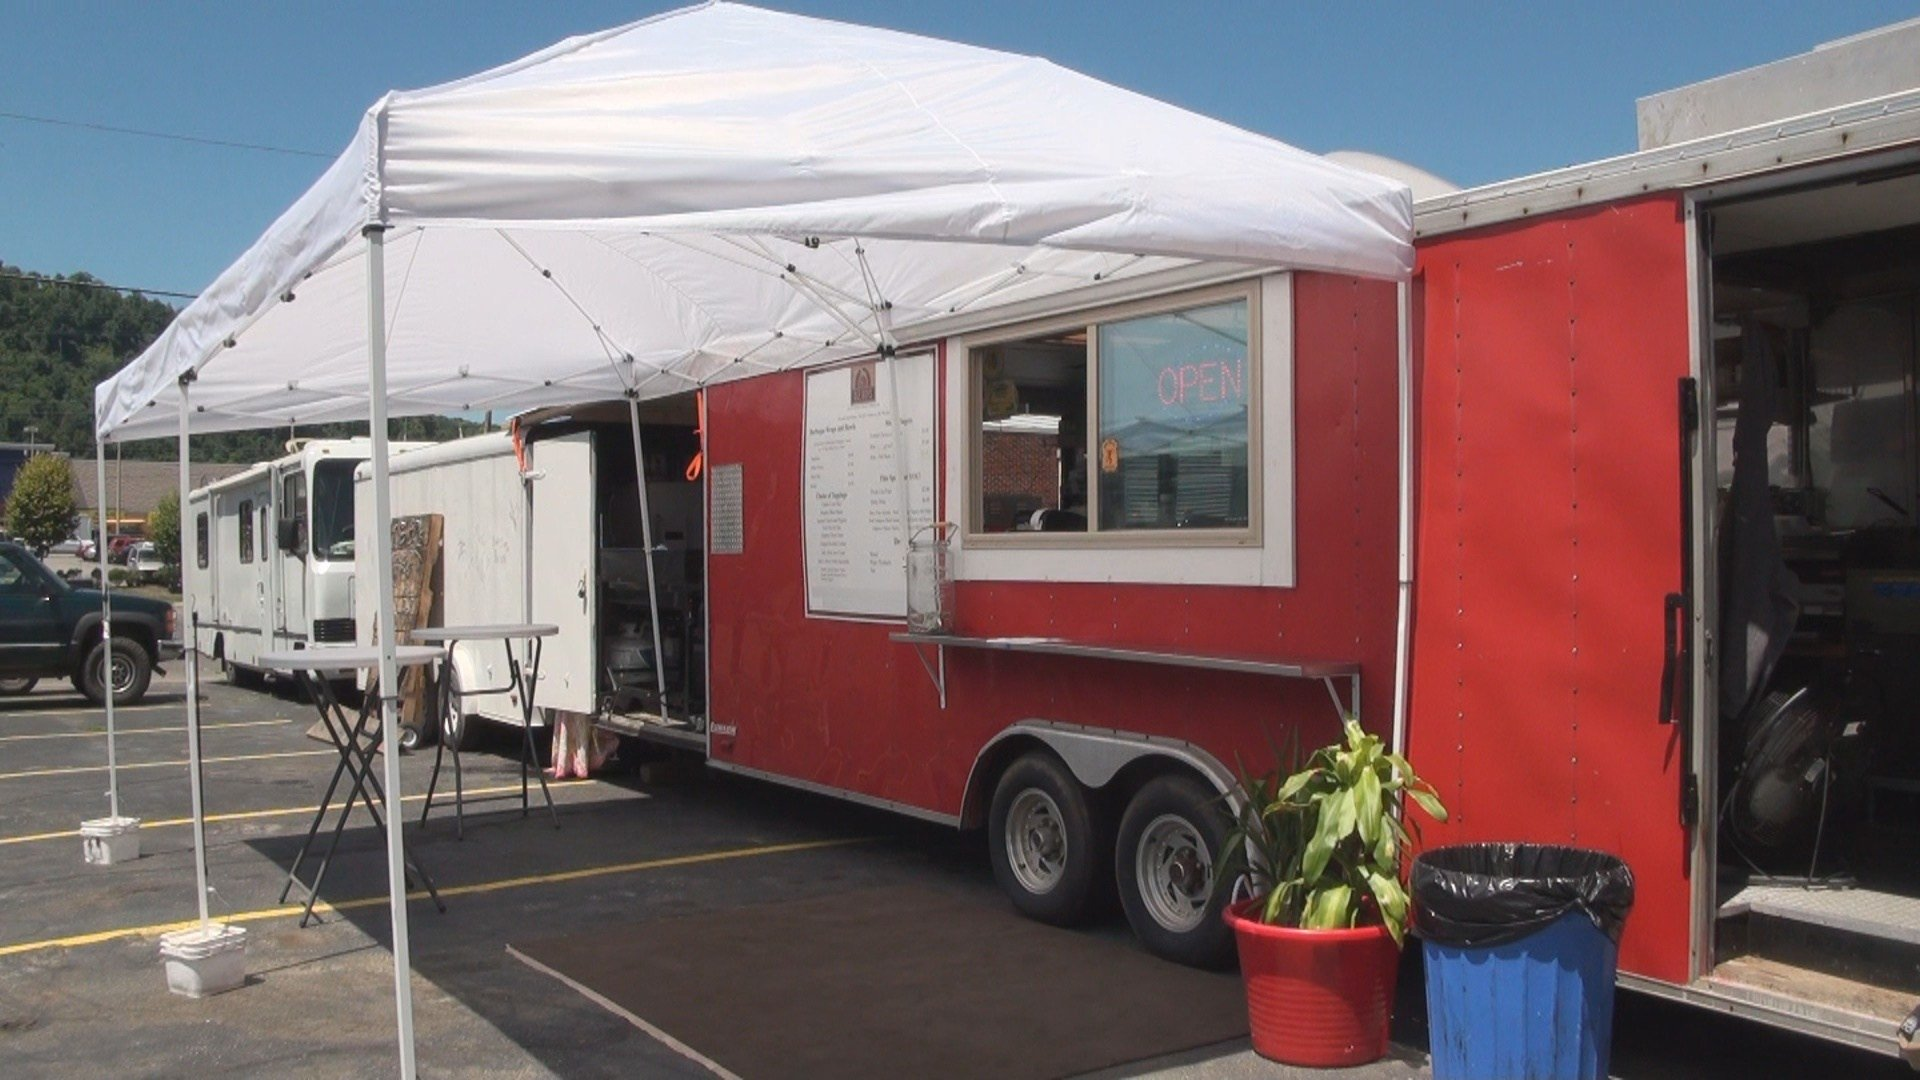 What started out as just a regular trailer has turned into a massive food truck and catering service a dream of one local chefs.